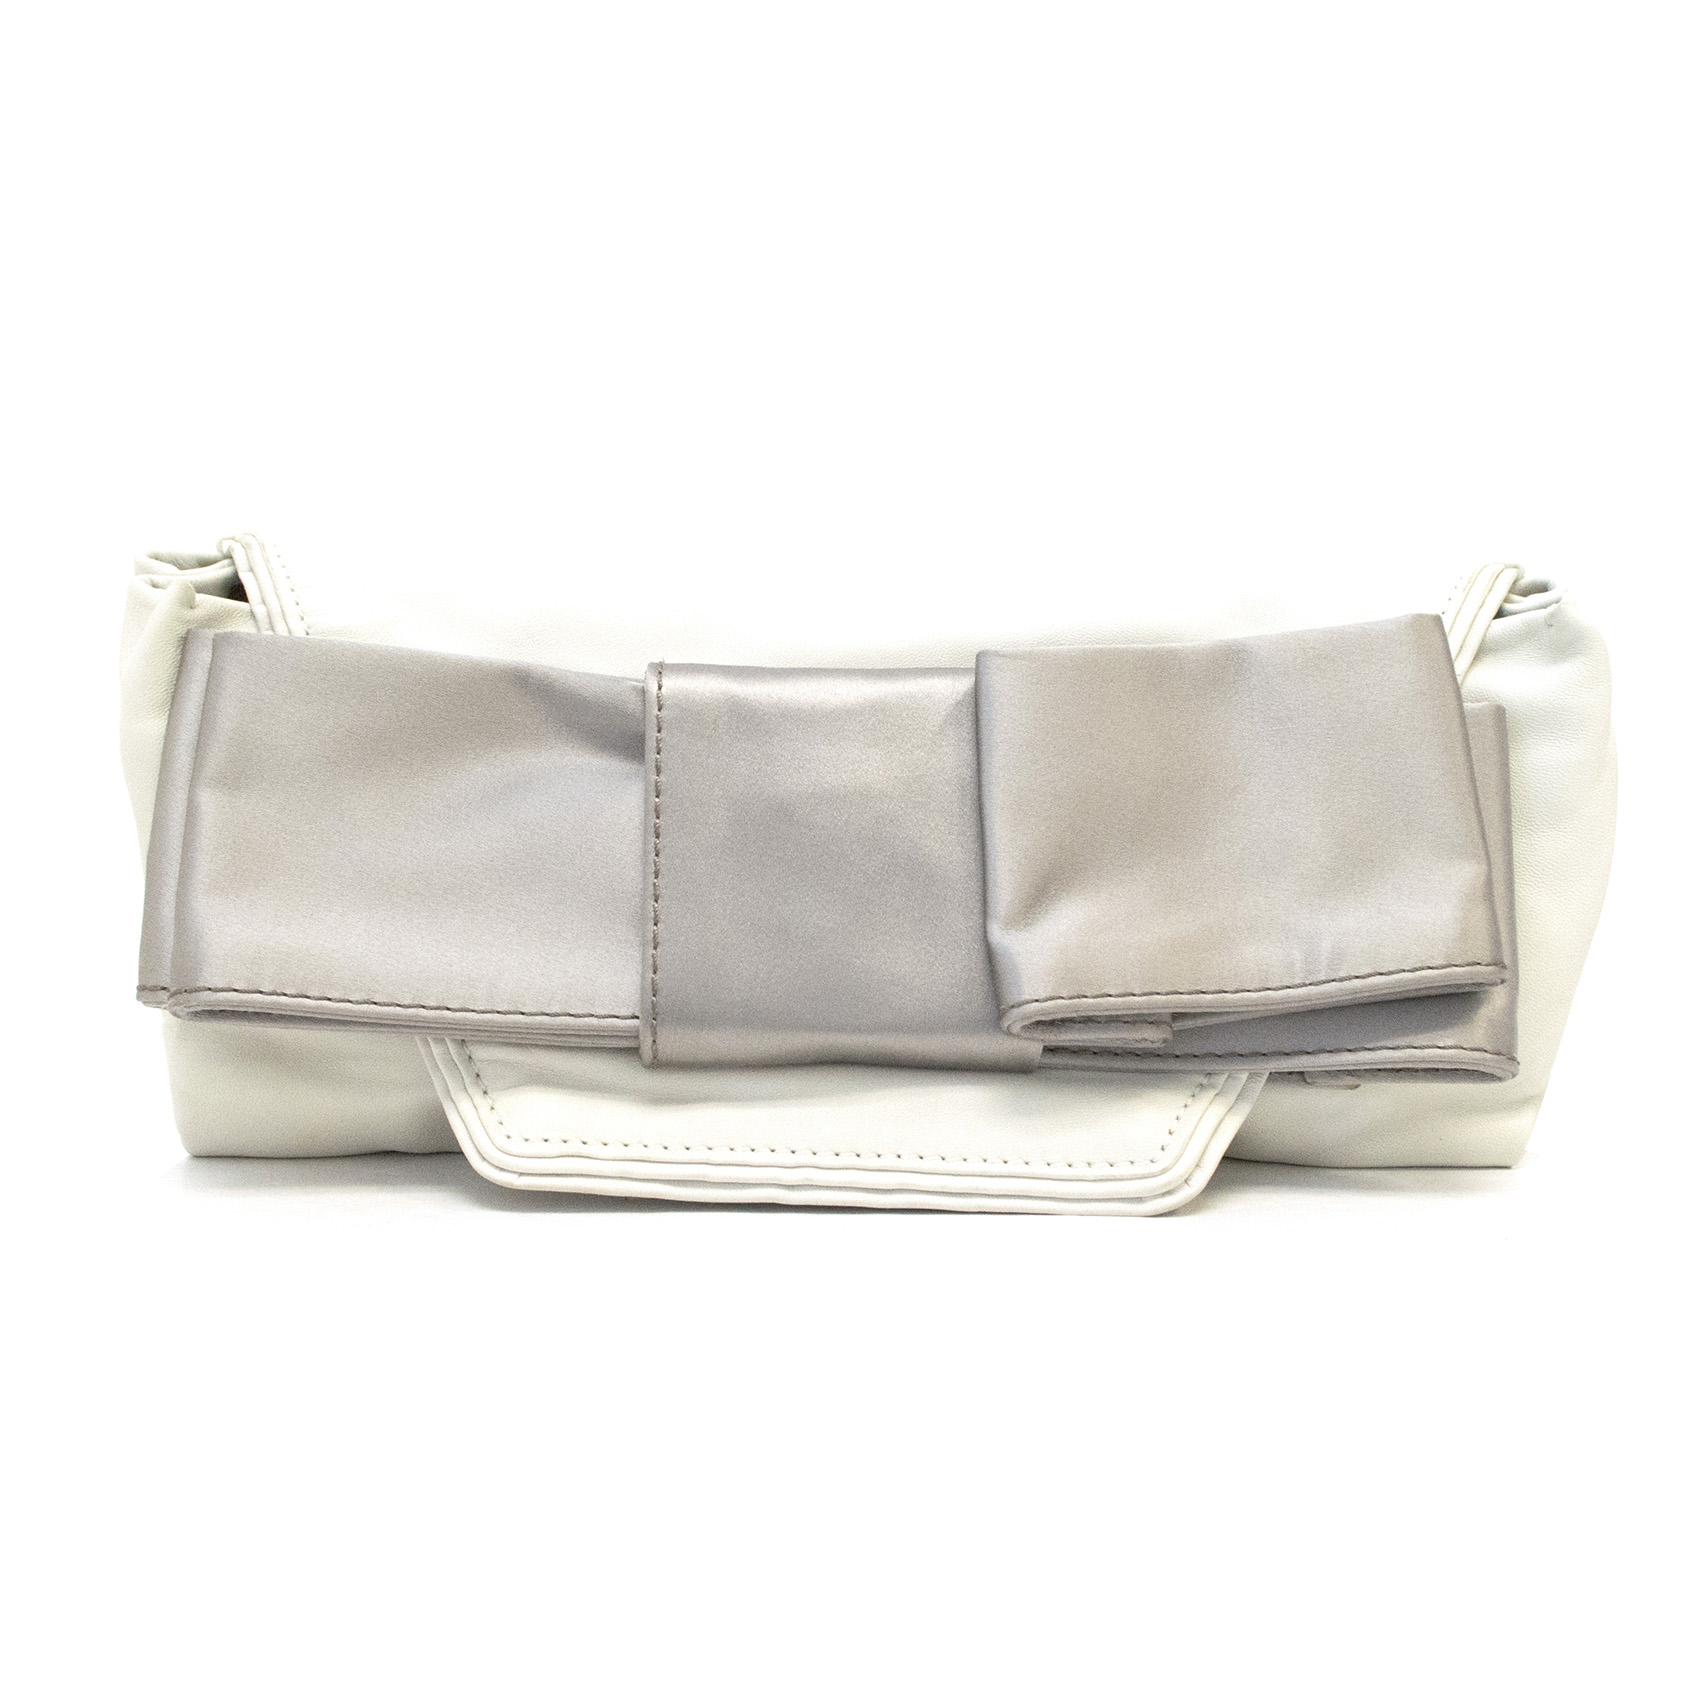 Chloe Bow Leather Clutch